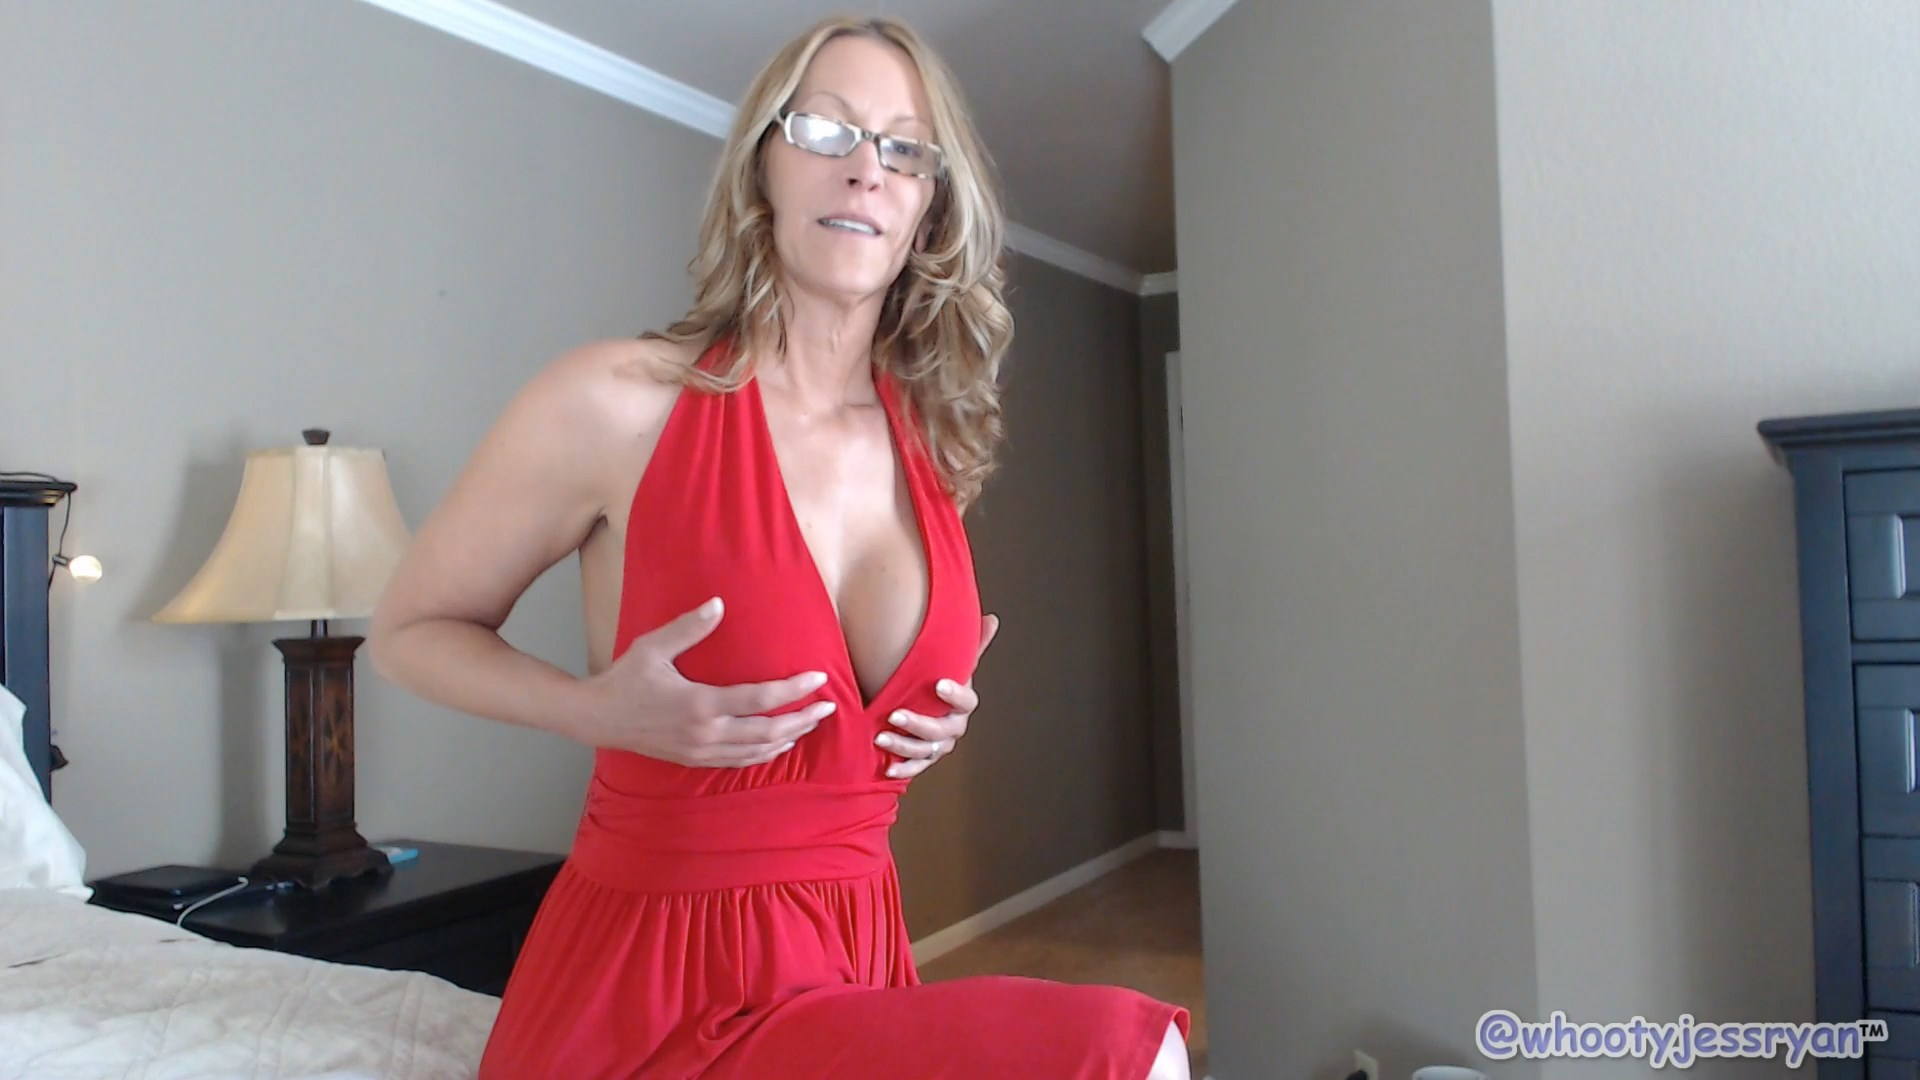 Propositioned By Mom - Jess Ryan